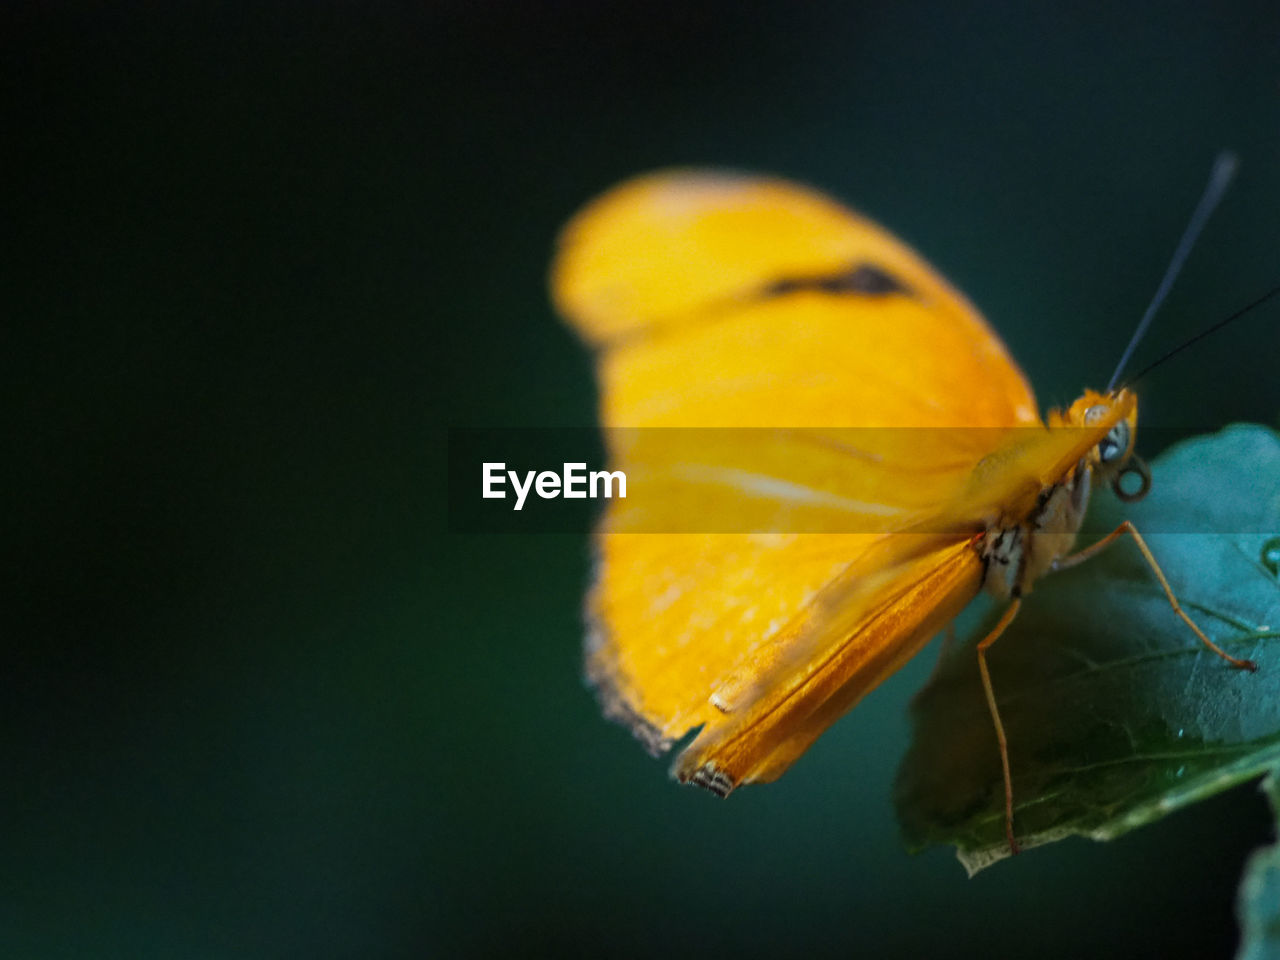 CLOSE-UP OF BUTTERFLY POLLINATING ON YELLOW ROSE